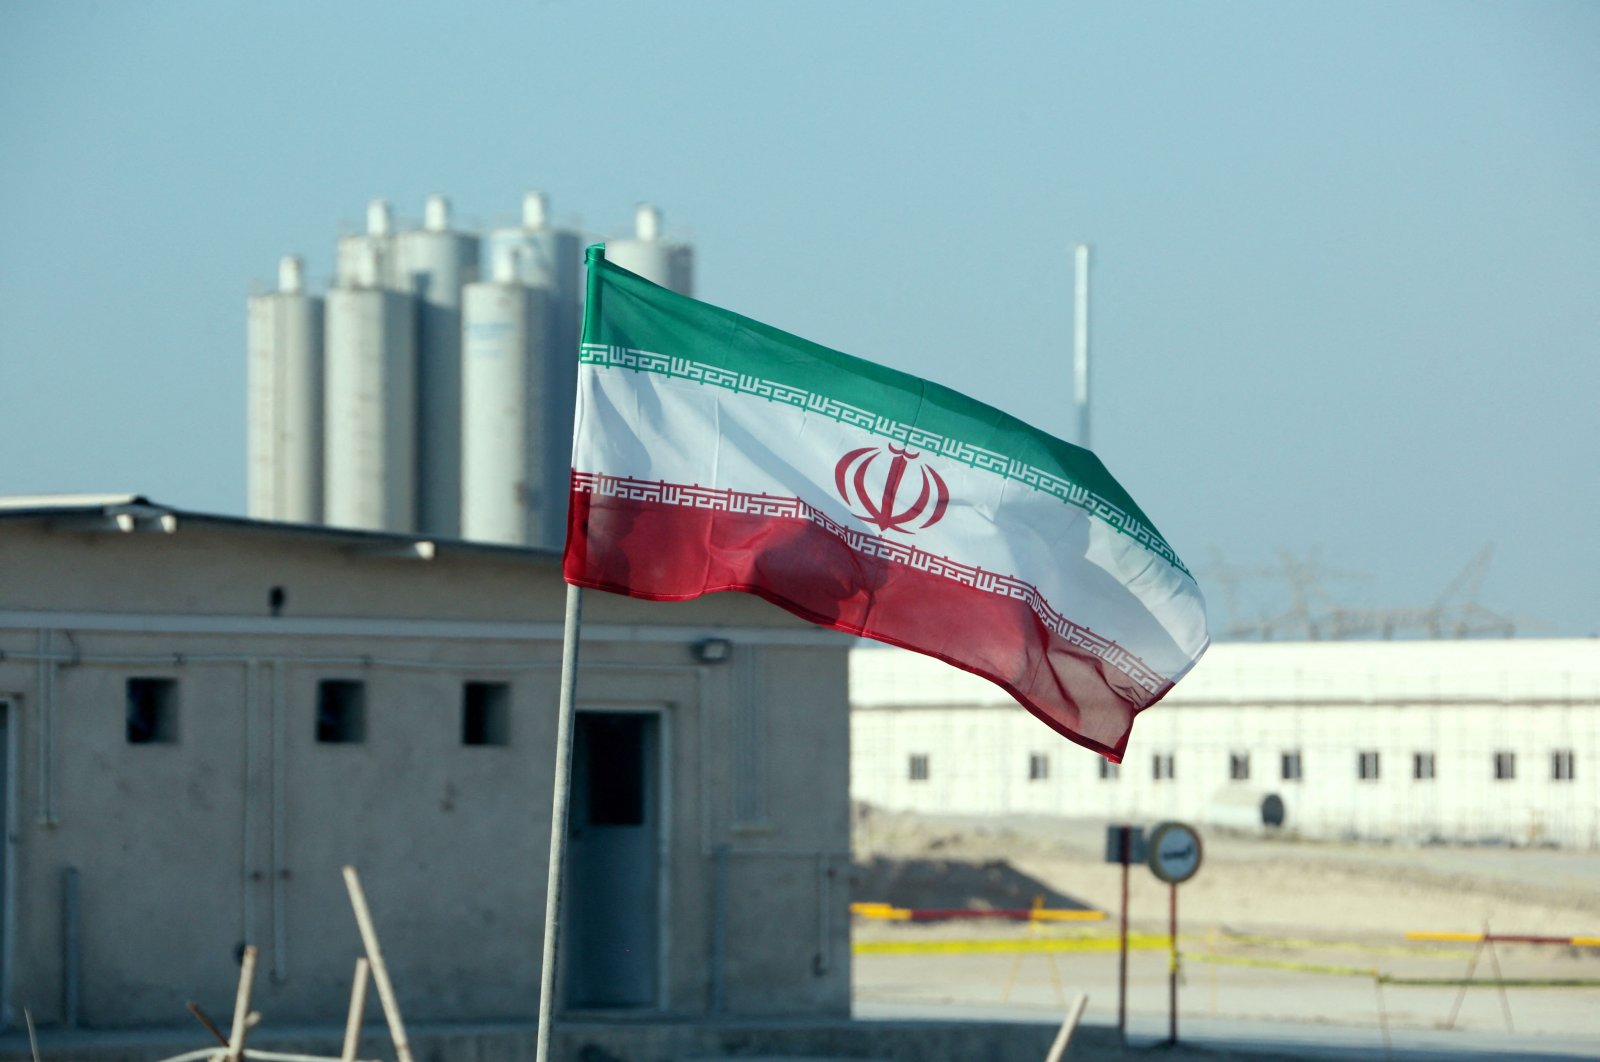 An Iranian flag flies near Iran's Bushehr nuclear power plant during an official ceremony to kick start work on a second reactor at the facility, southern Iran, Nov. 10, 2019. (AFP Photo)